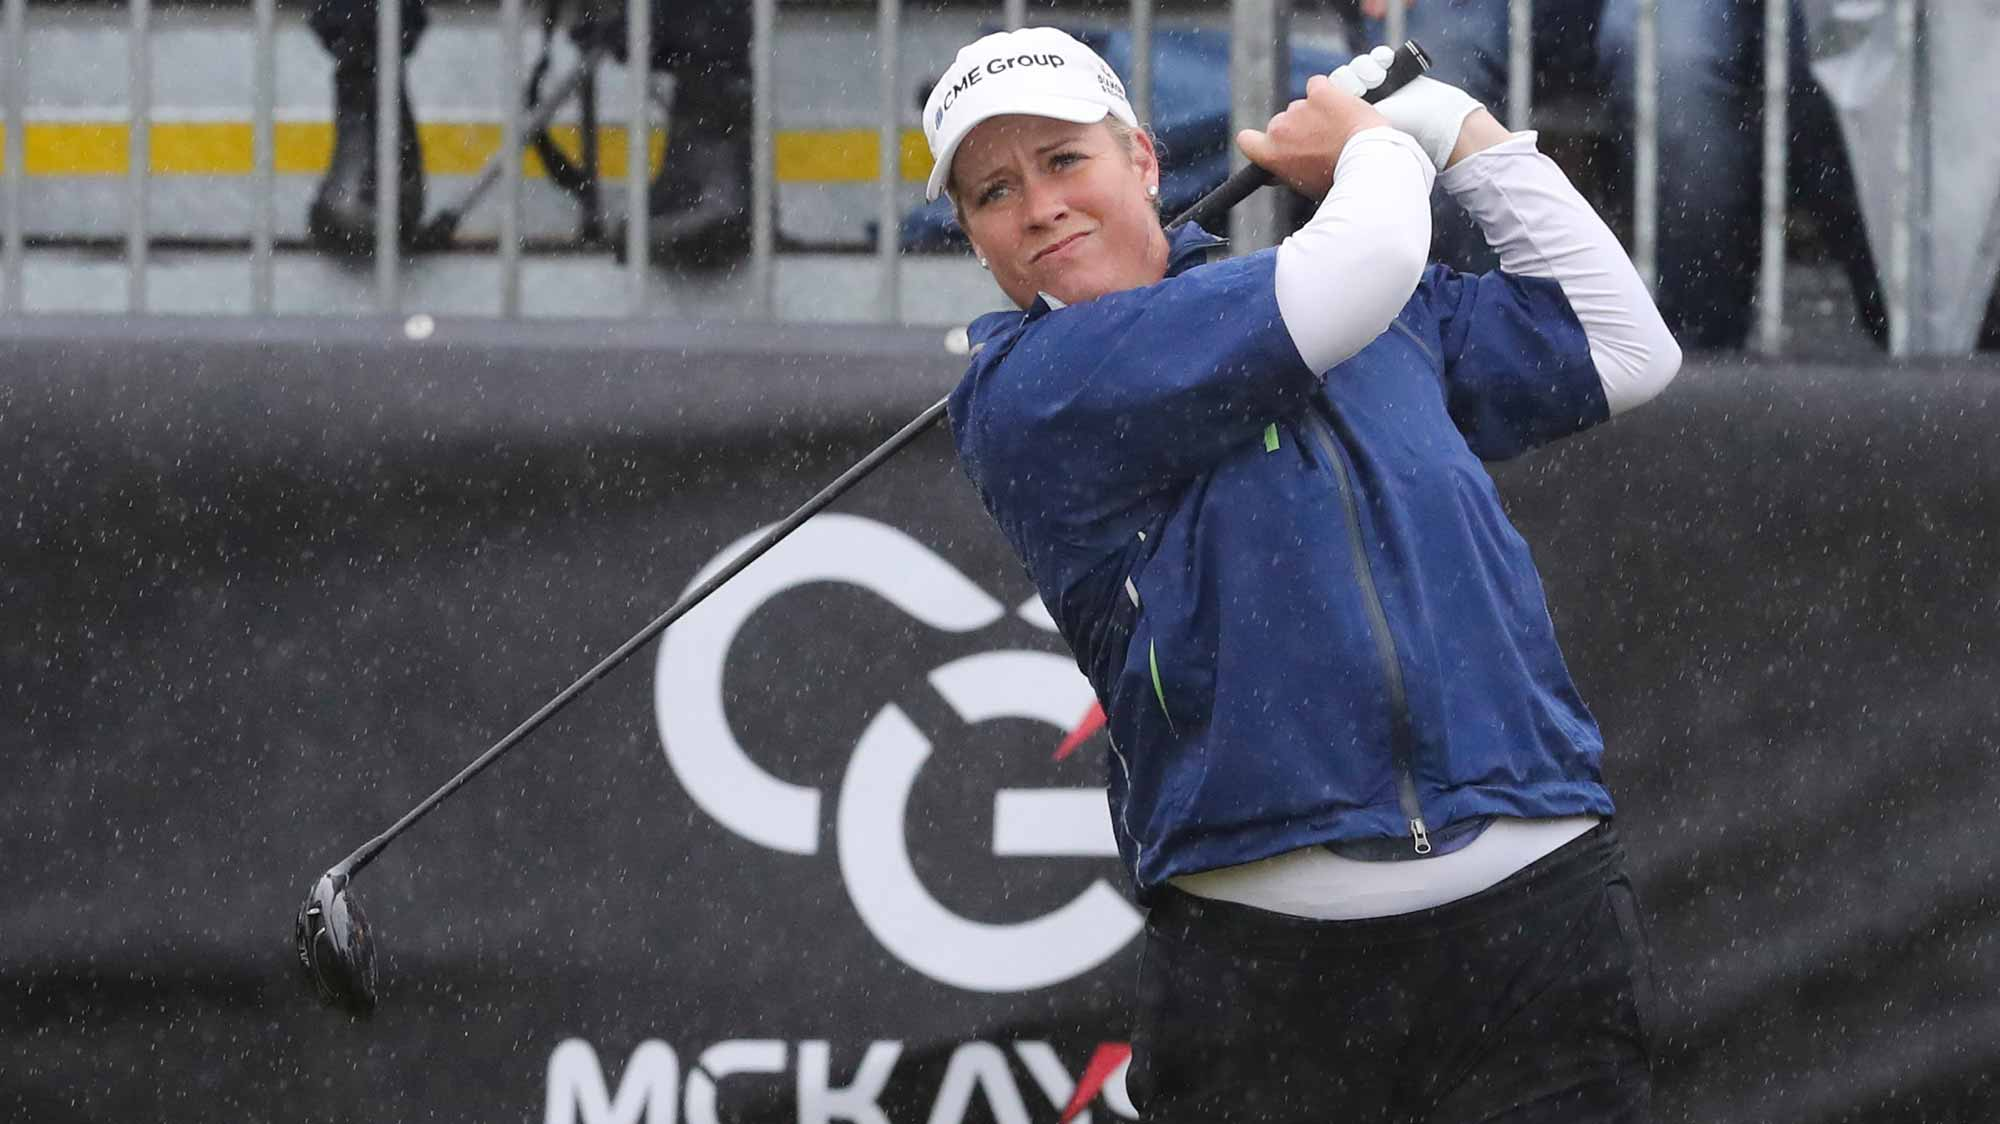 Brittany Lincicome Hits Her Tee Shot During The Final Round of the MCKAYSON New Zealand Women's Open